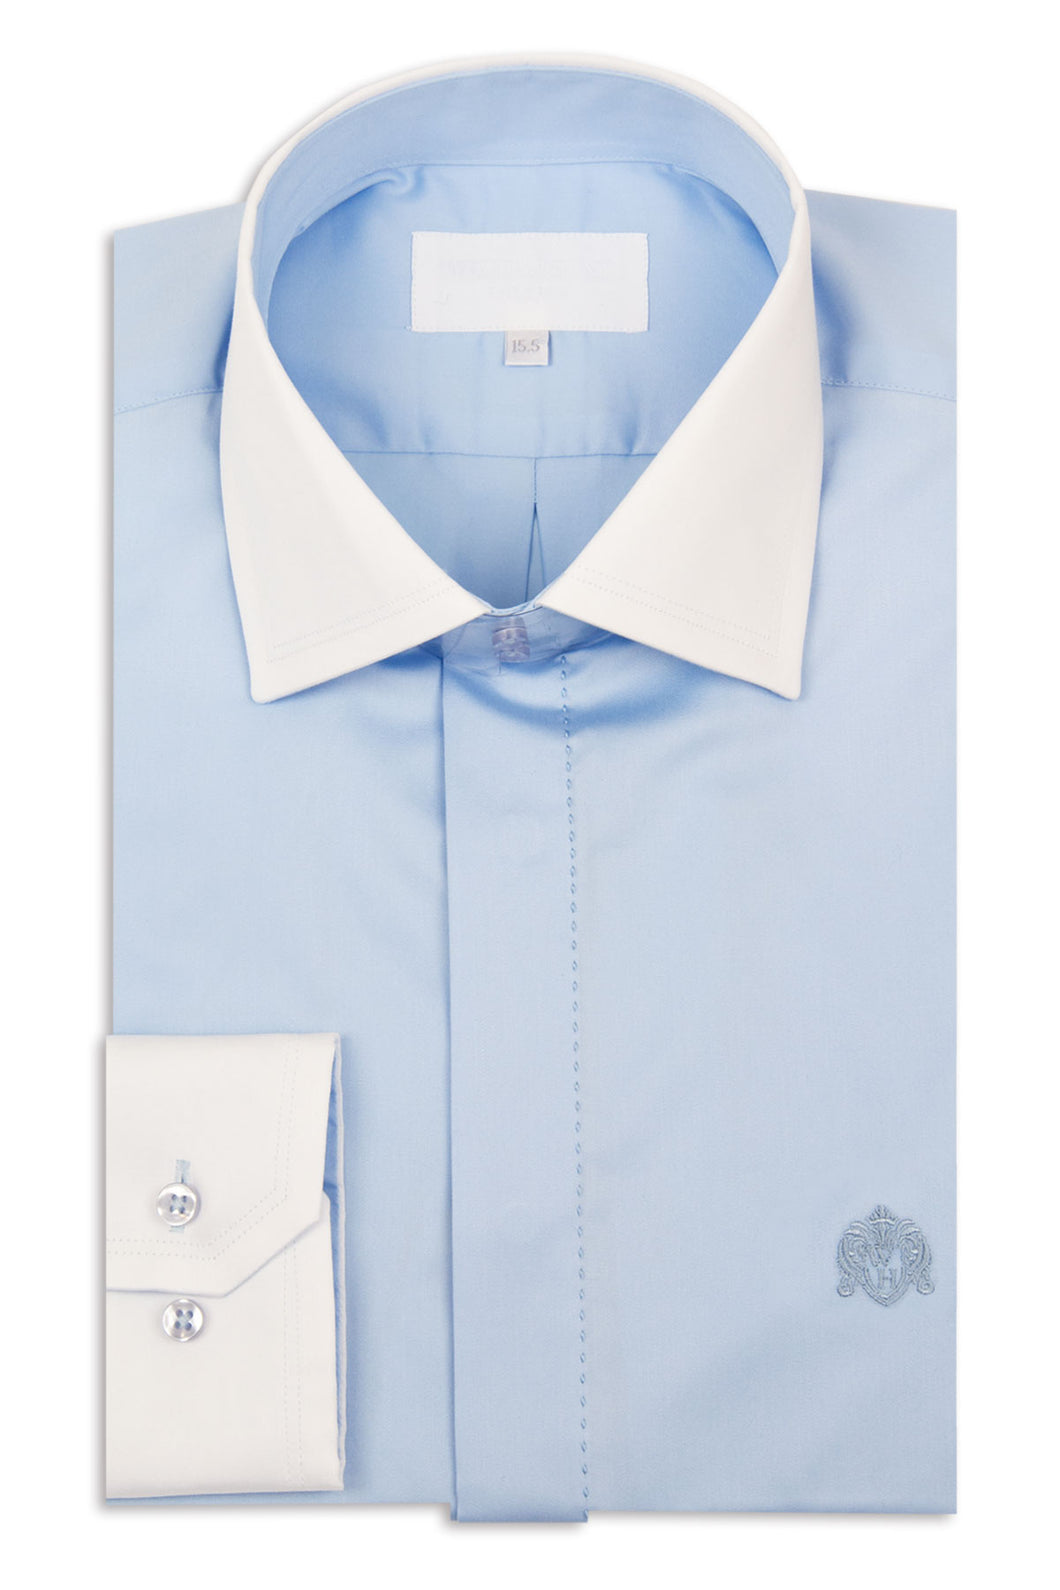 Sky Blue Cutaway Collar Shirt with White Collar